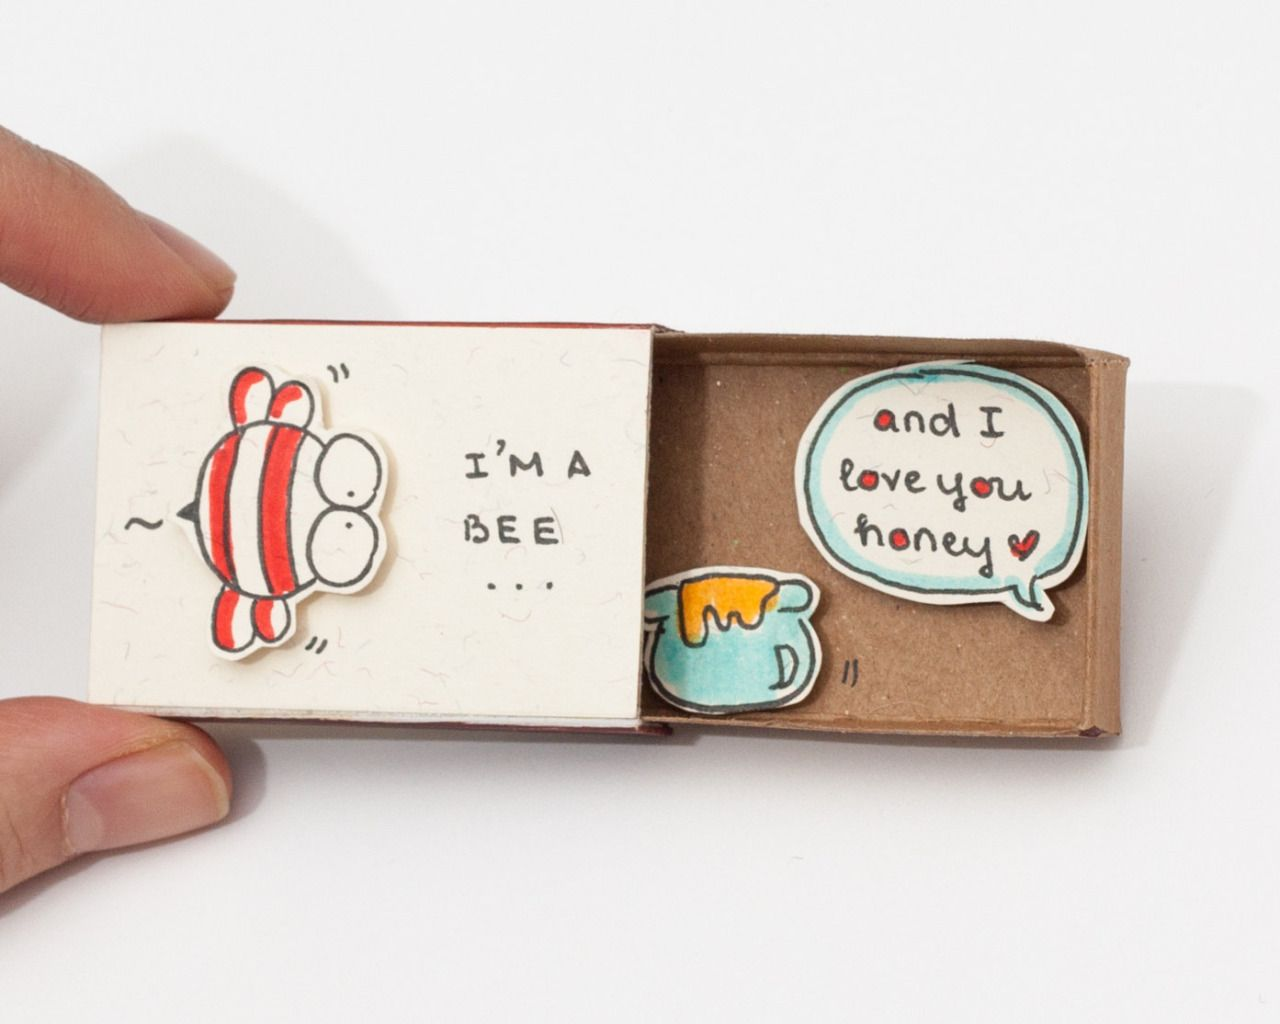 Cute matchboxes to profess love match boxes cards and gift